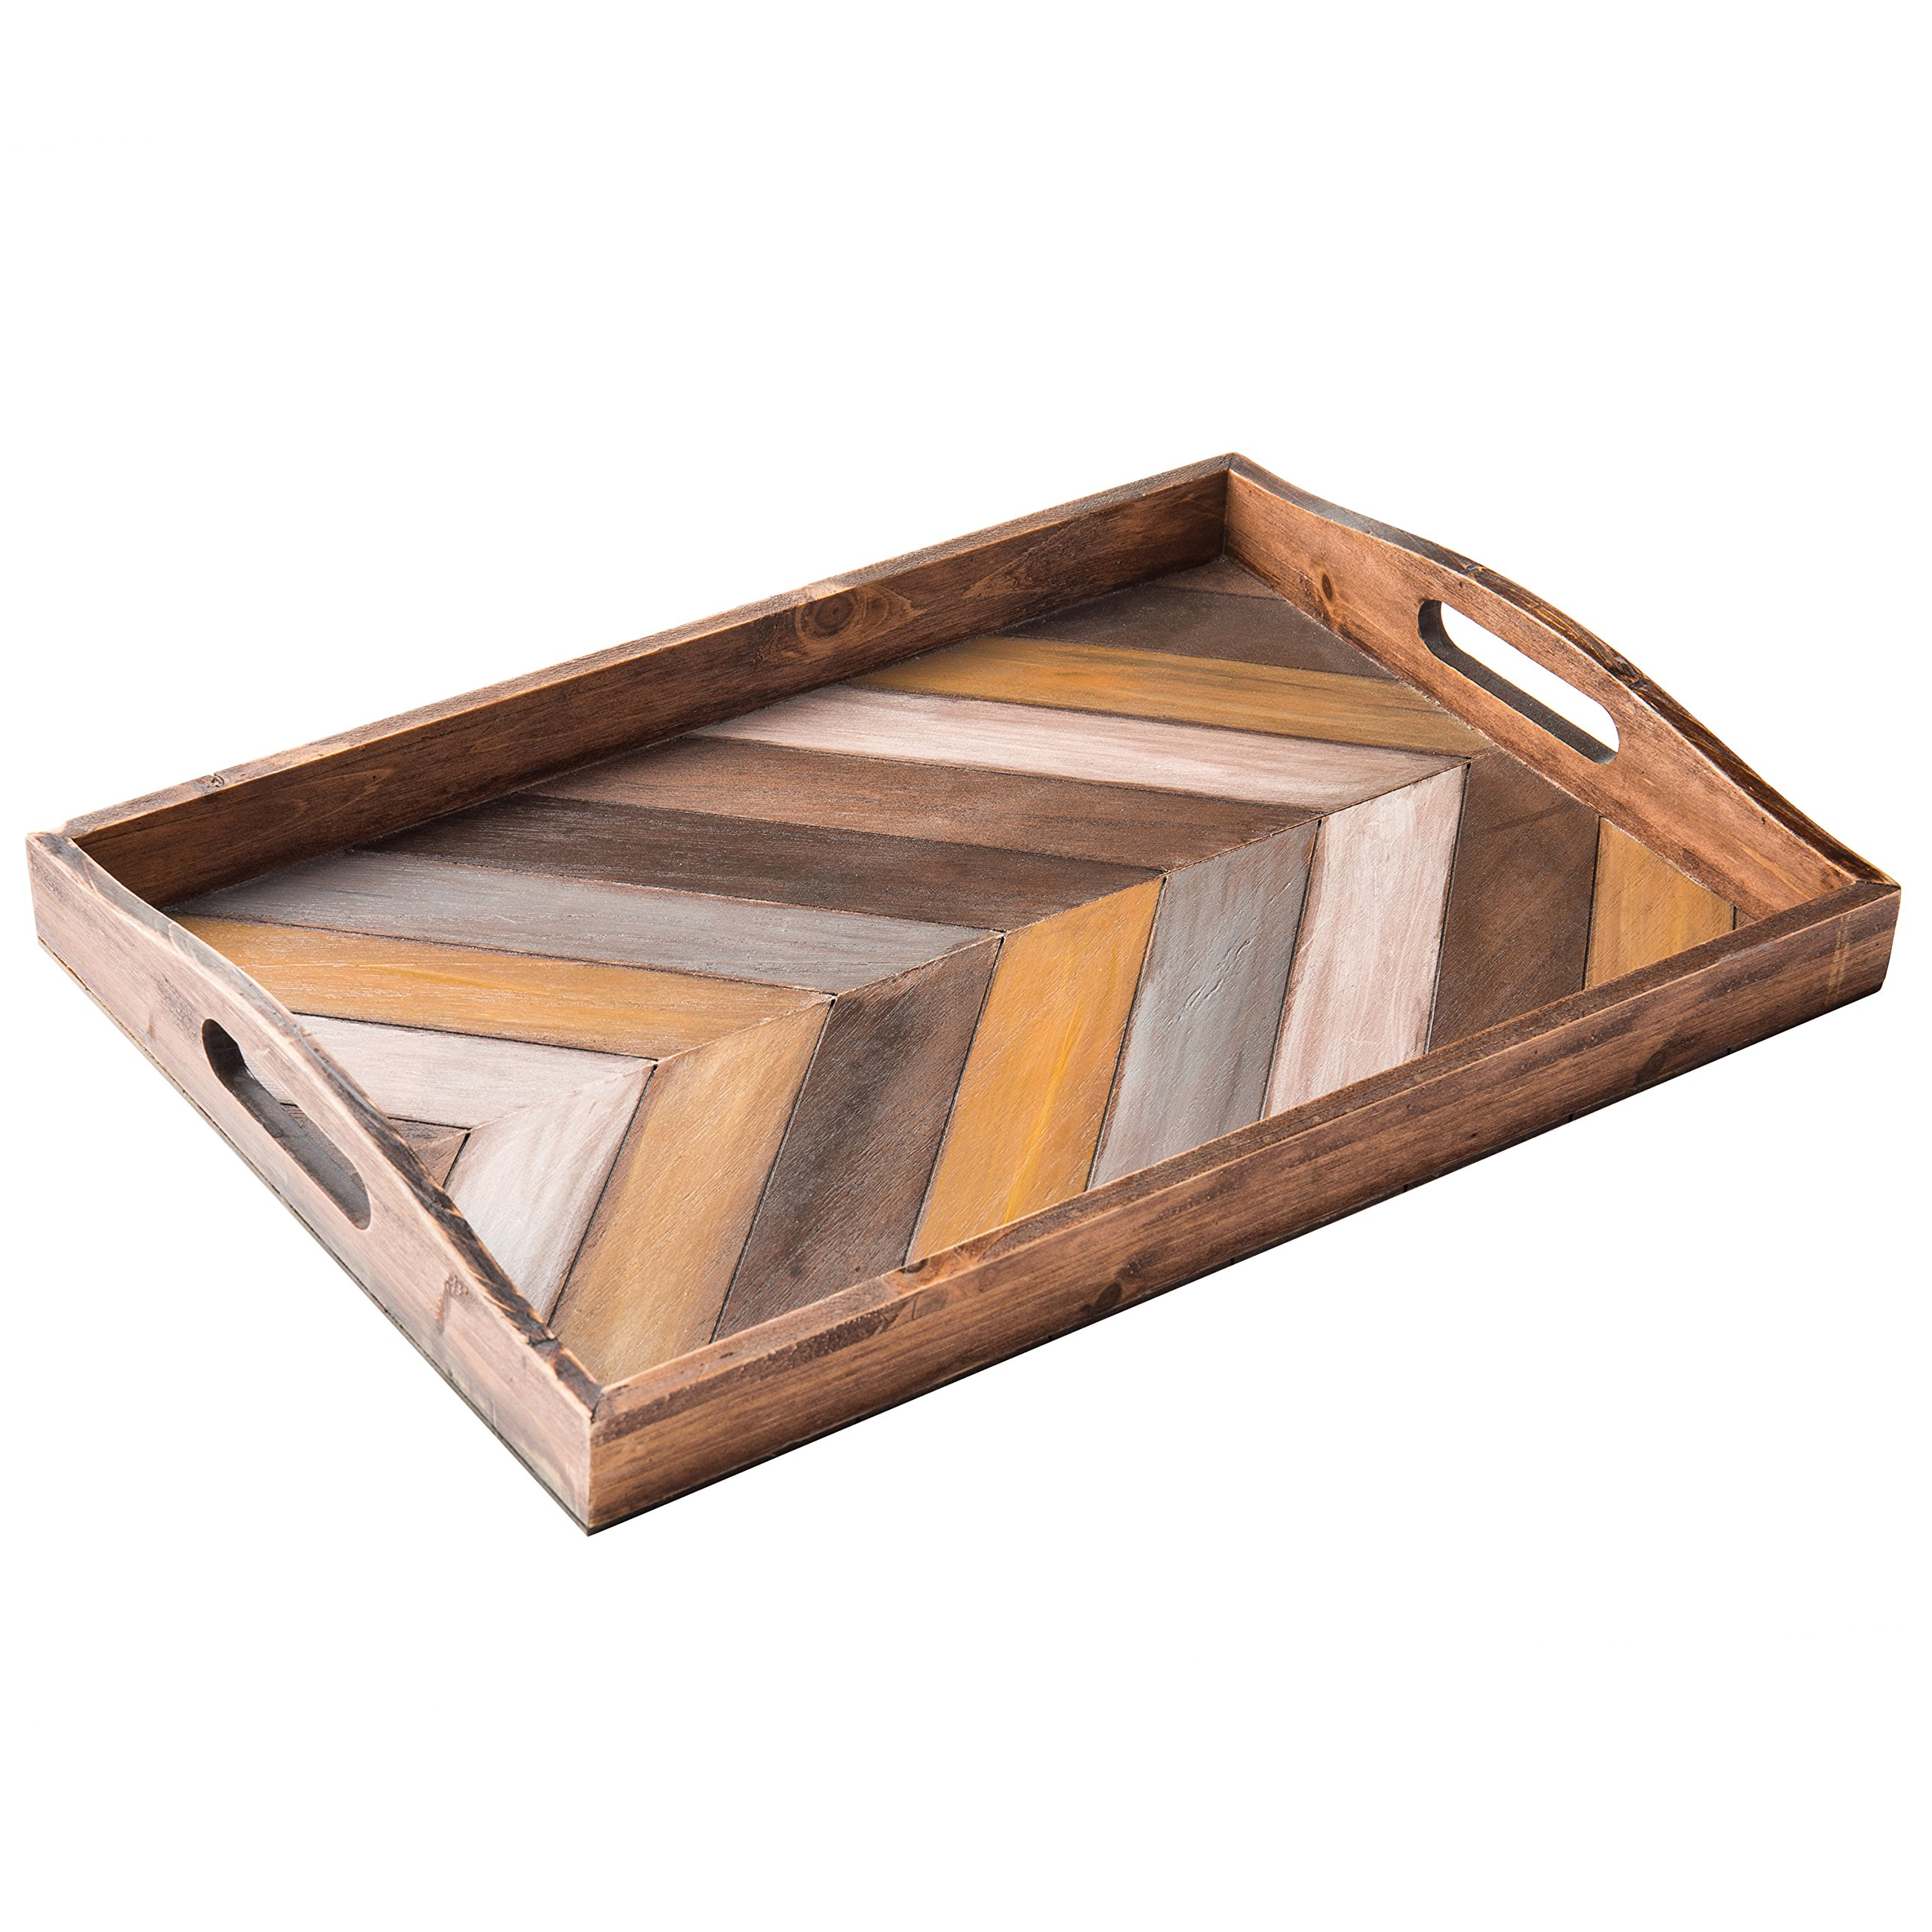 MyGift Rustic Chevron Rectangular Wood Breakfast Serving Tray with Cutout Handles - 16 x 12-Inch by MyGift